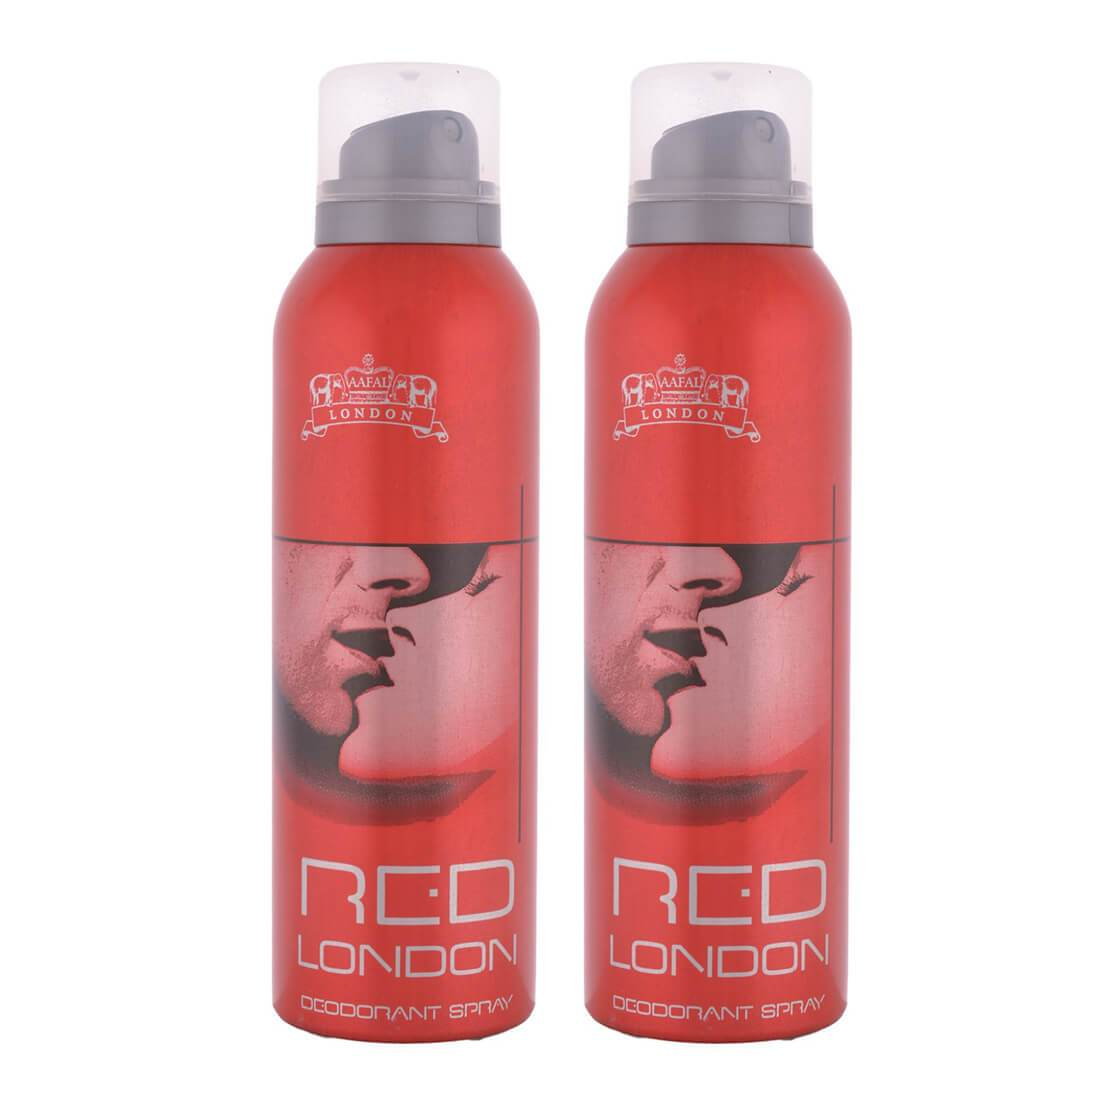 London Red Deodorant Body Spray Pack of 2 x 200ml